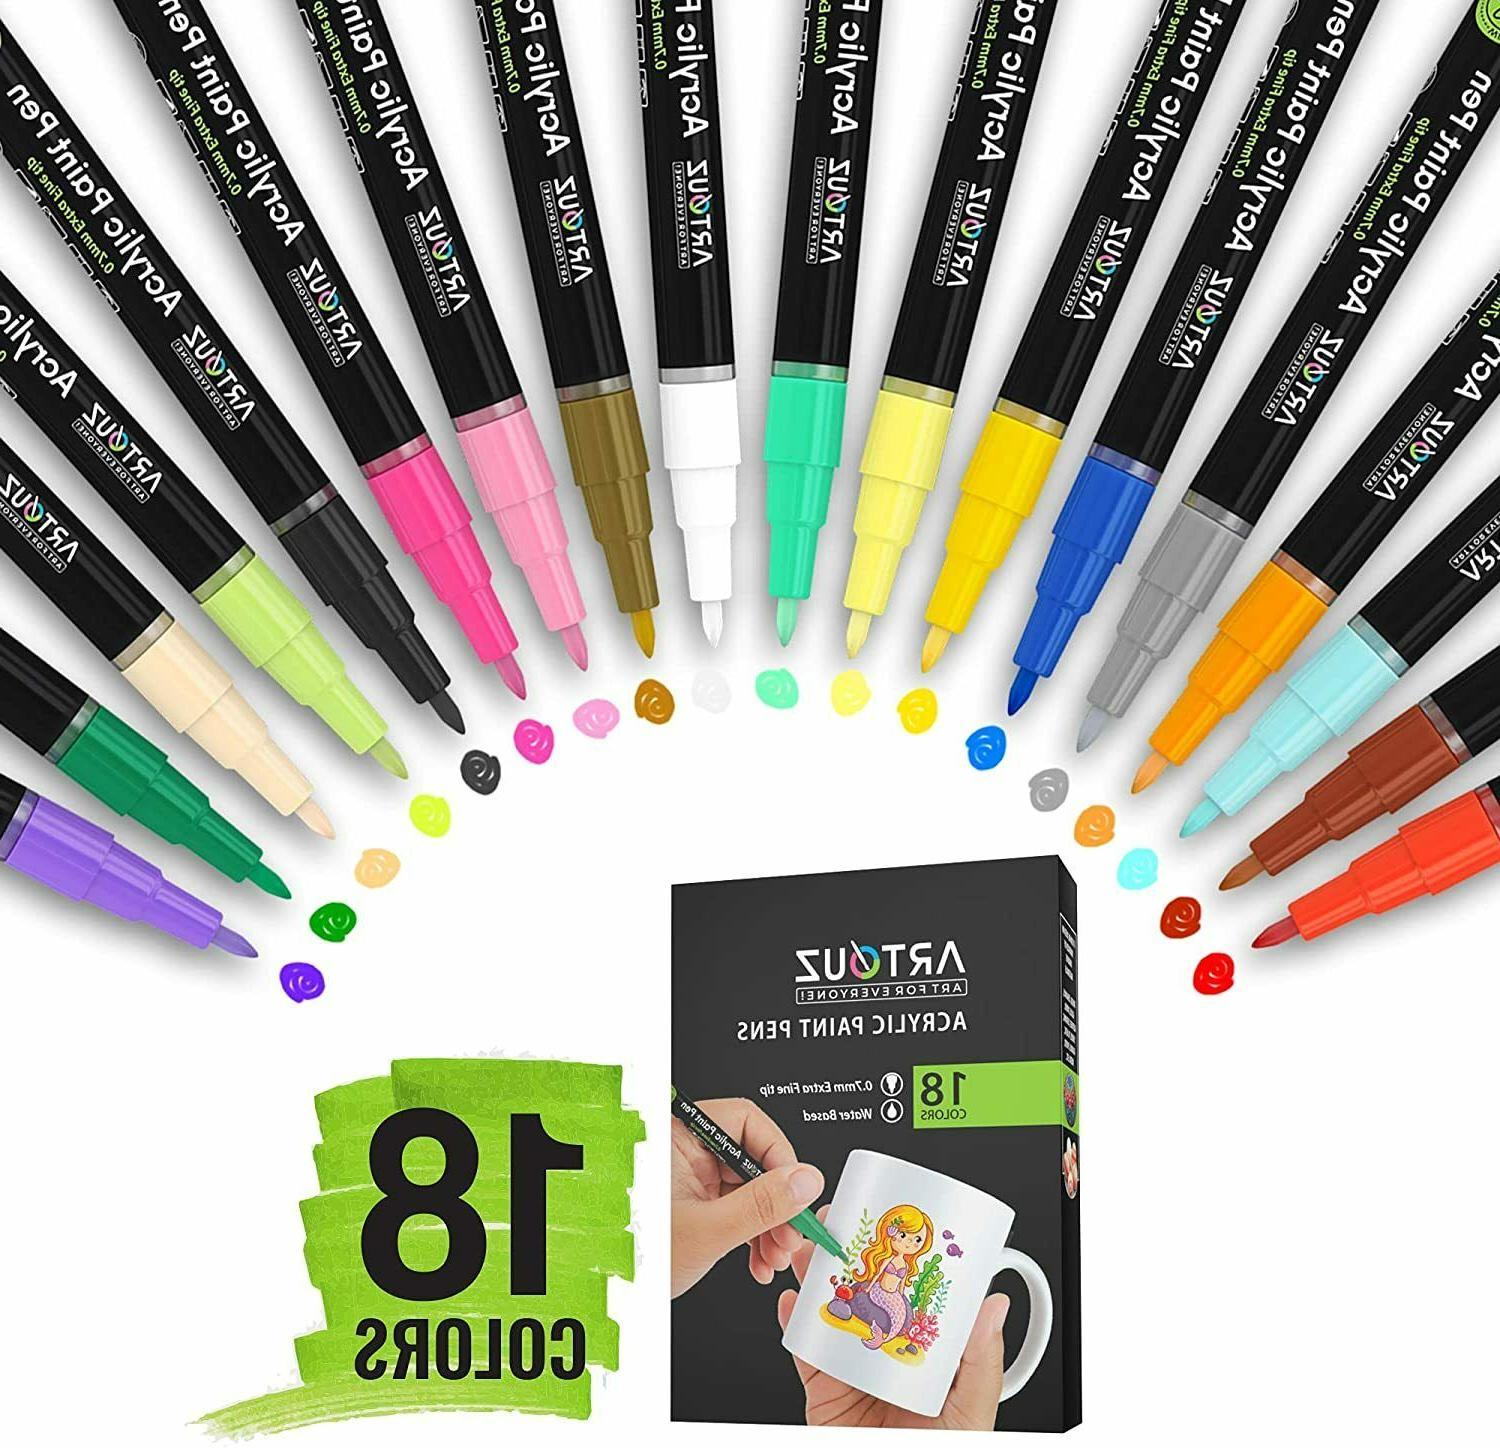 acrylic paint pens set of 28 premium